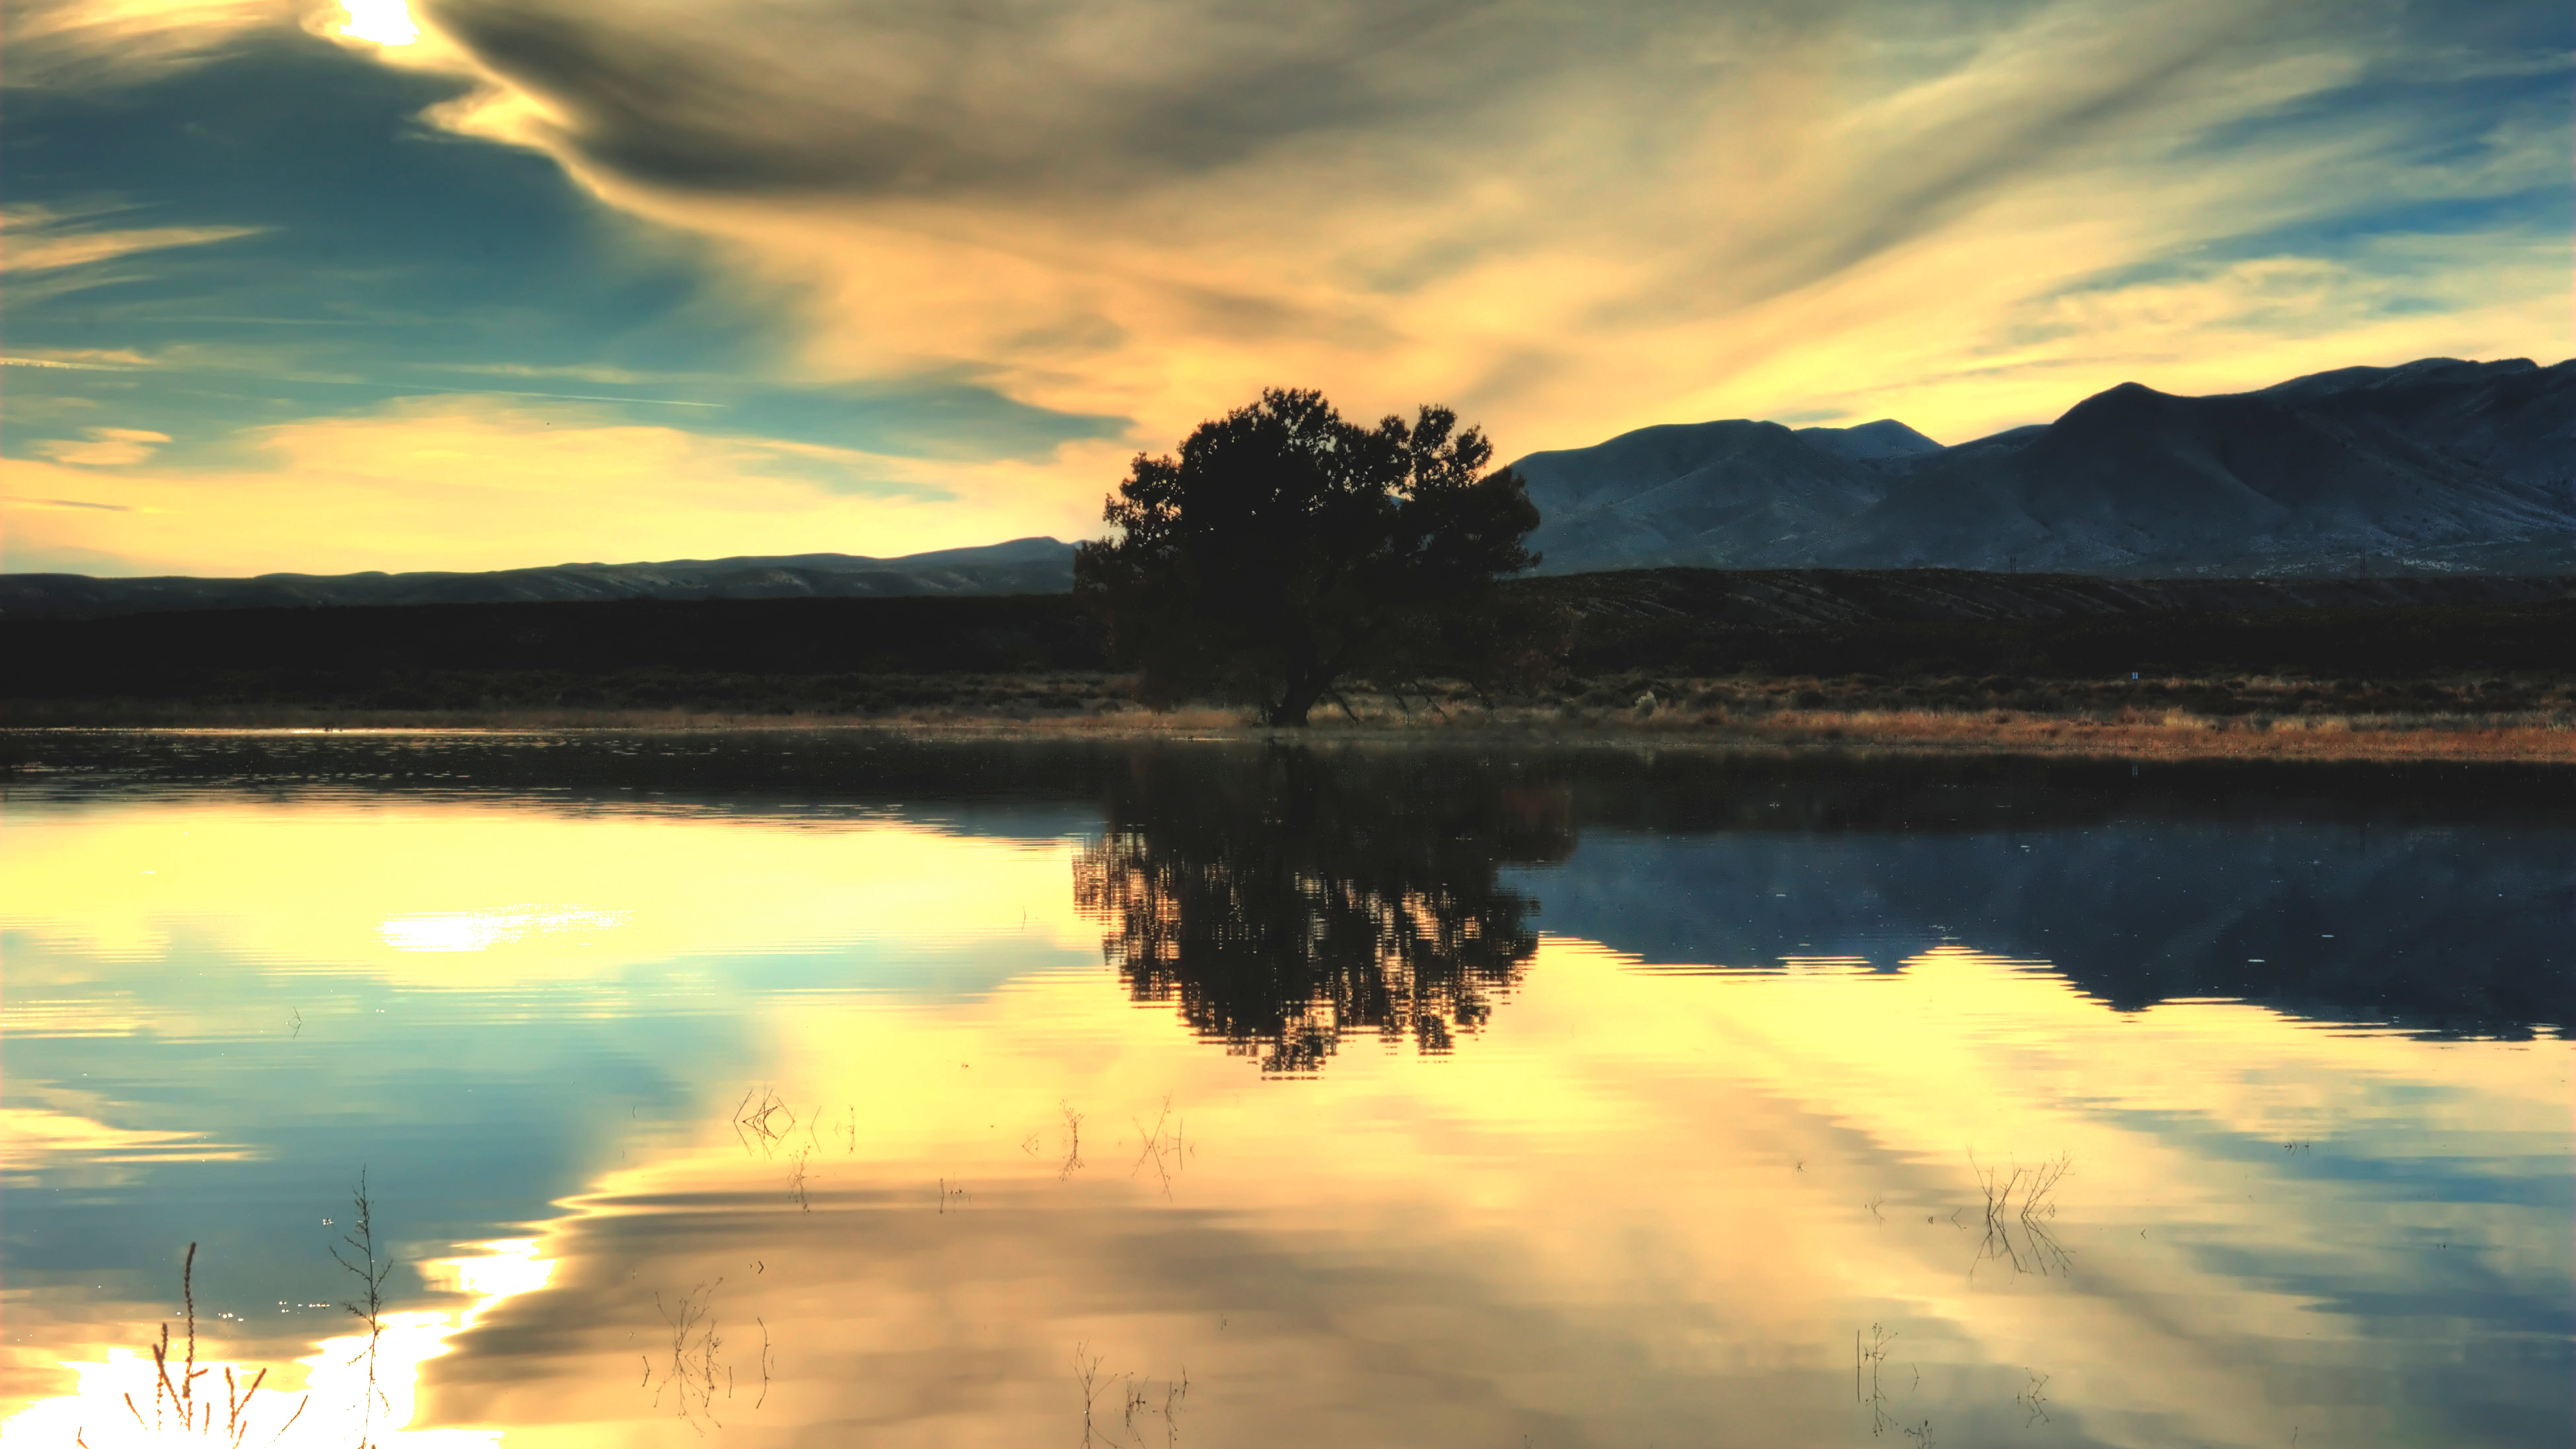 Tree water reflection at sunset